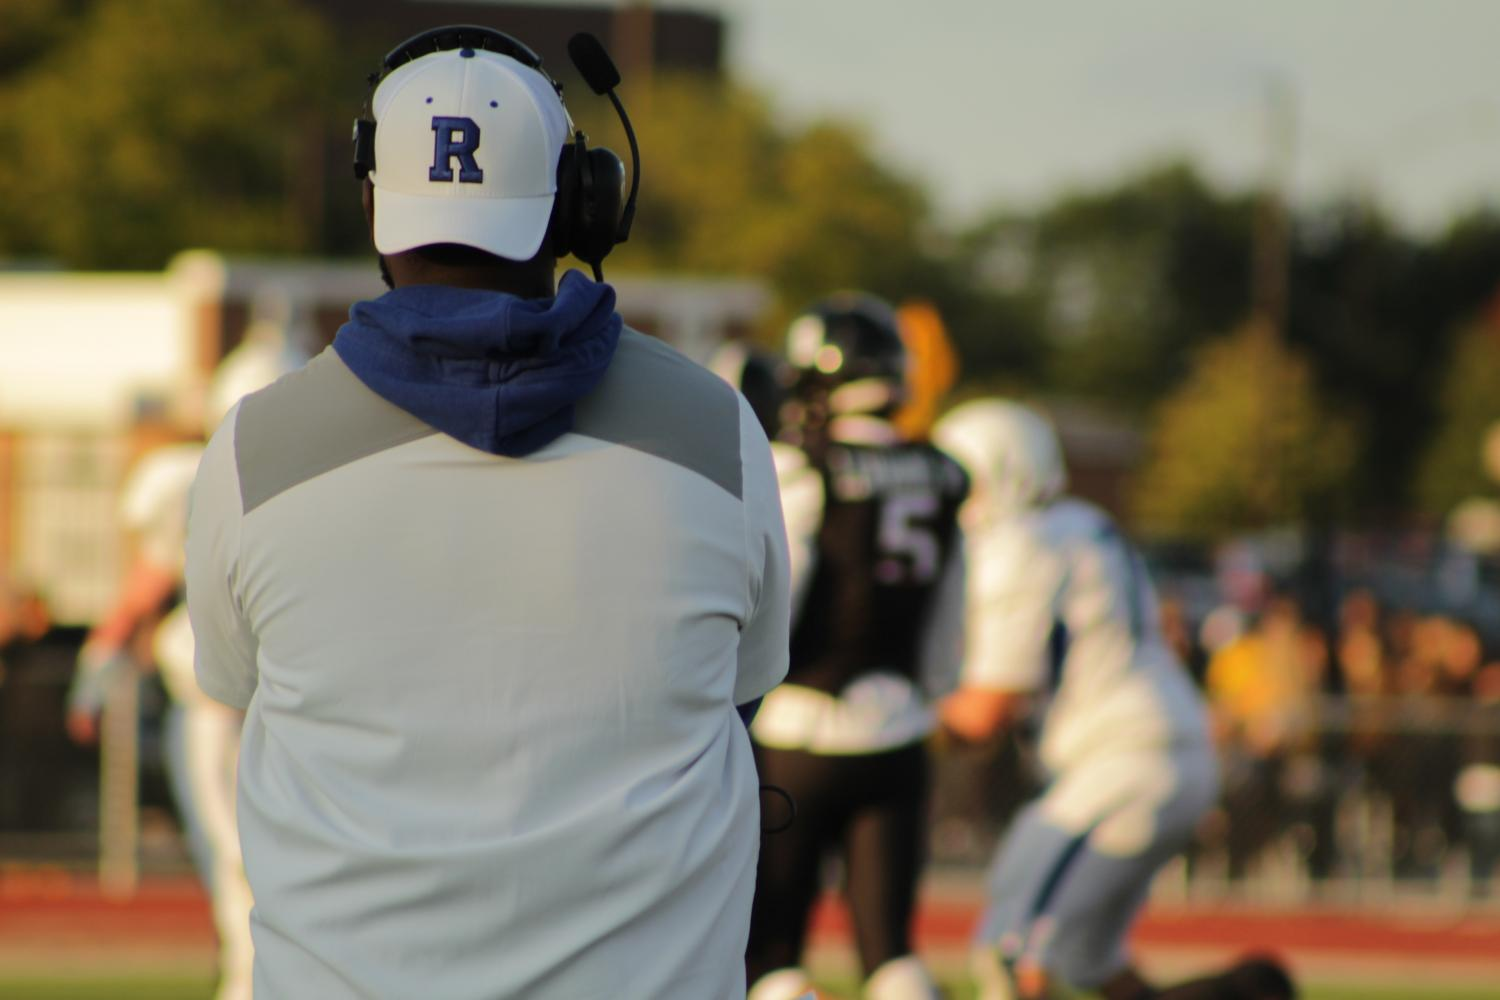 Coach of the Rochester Falcons watches team prepare before the game.